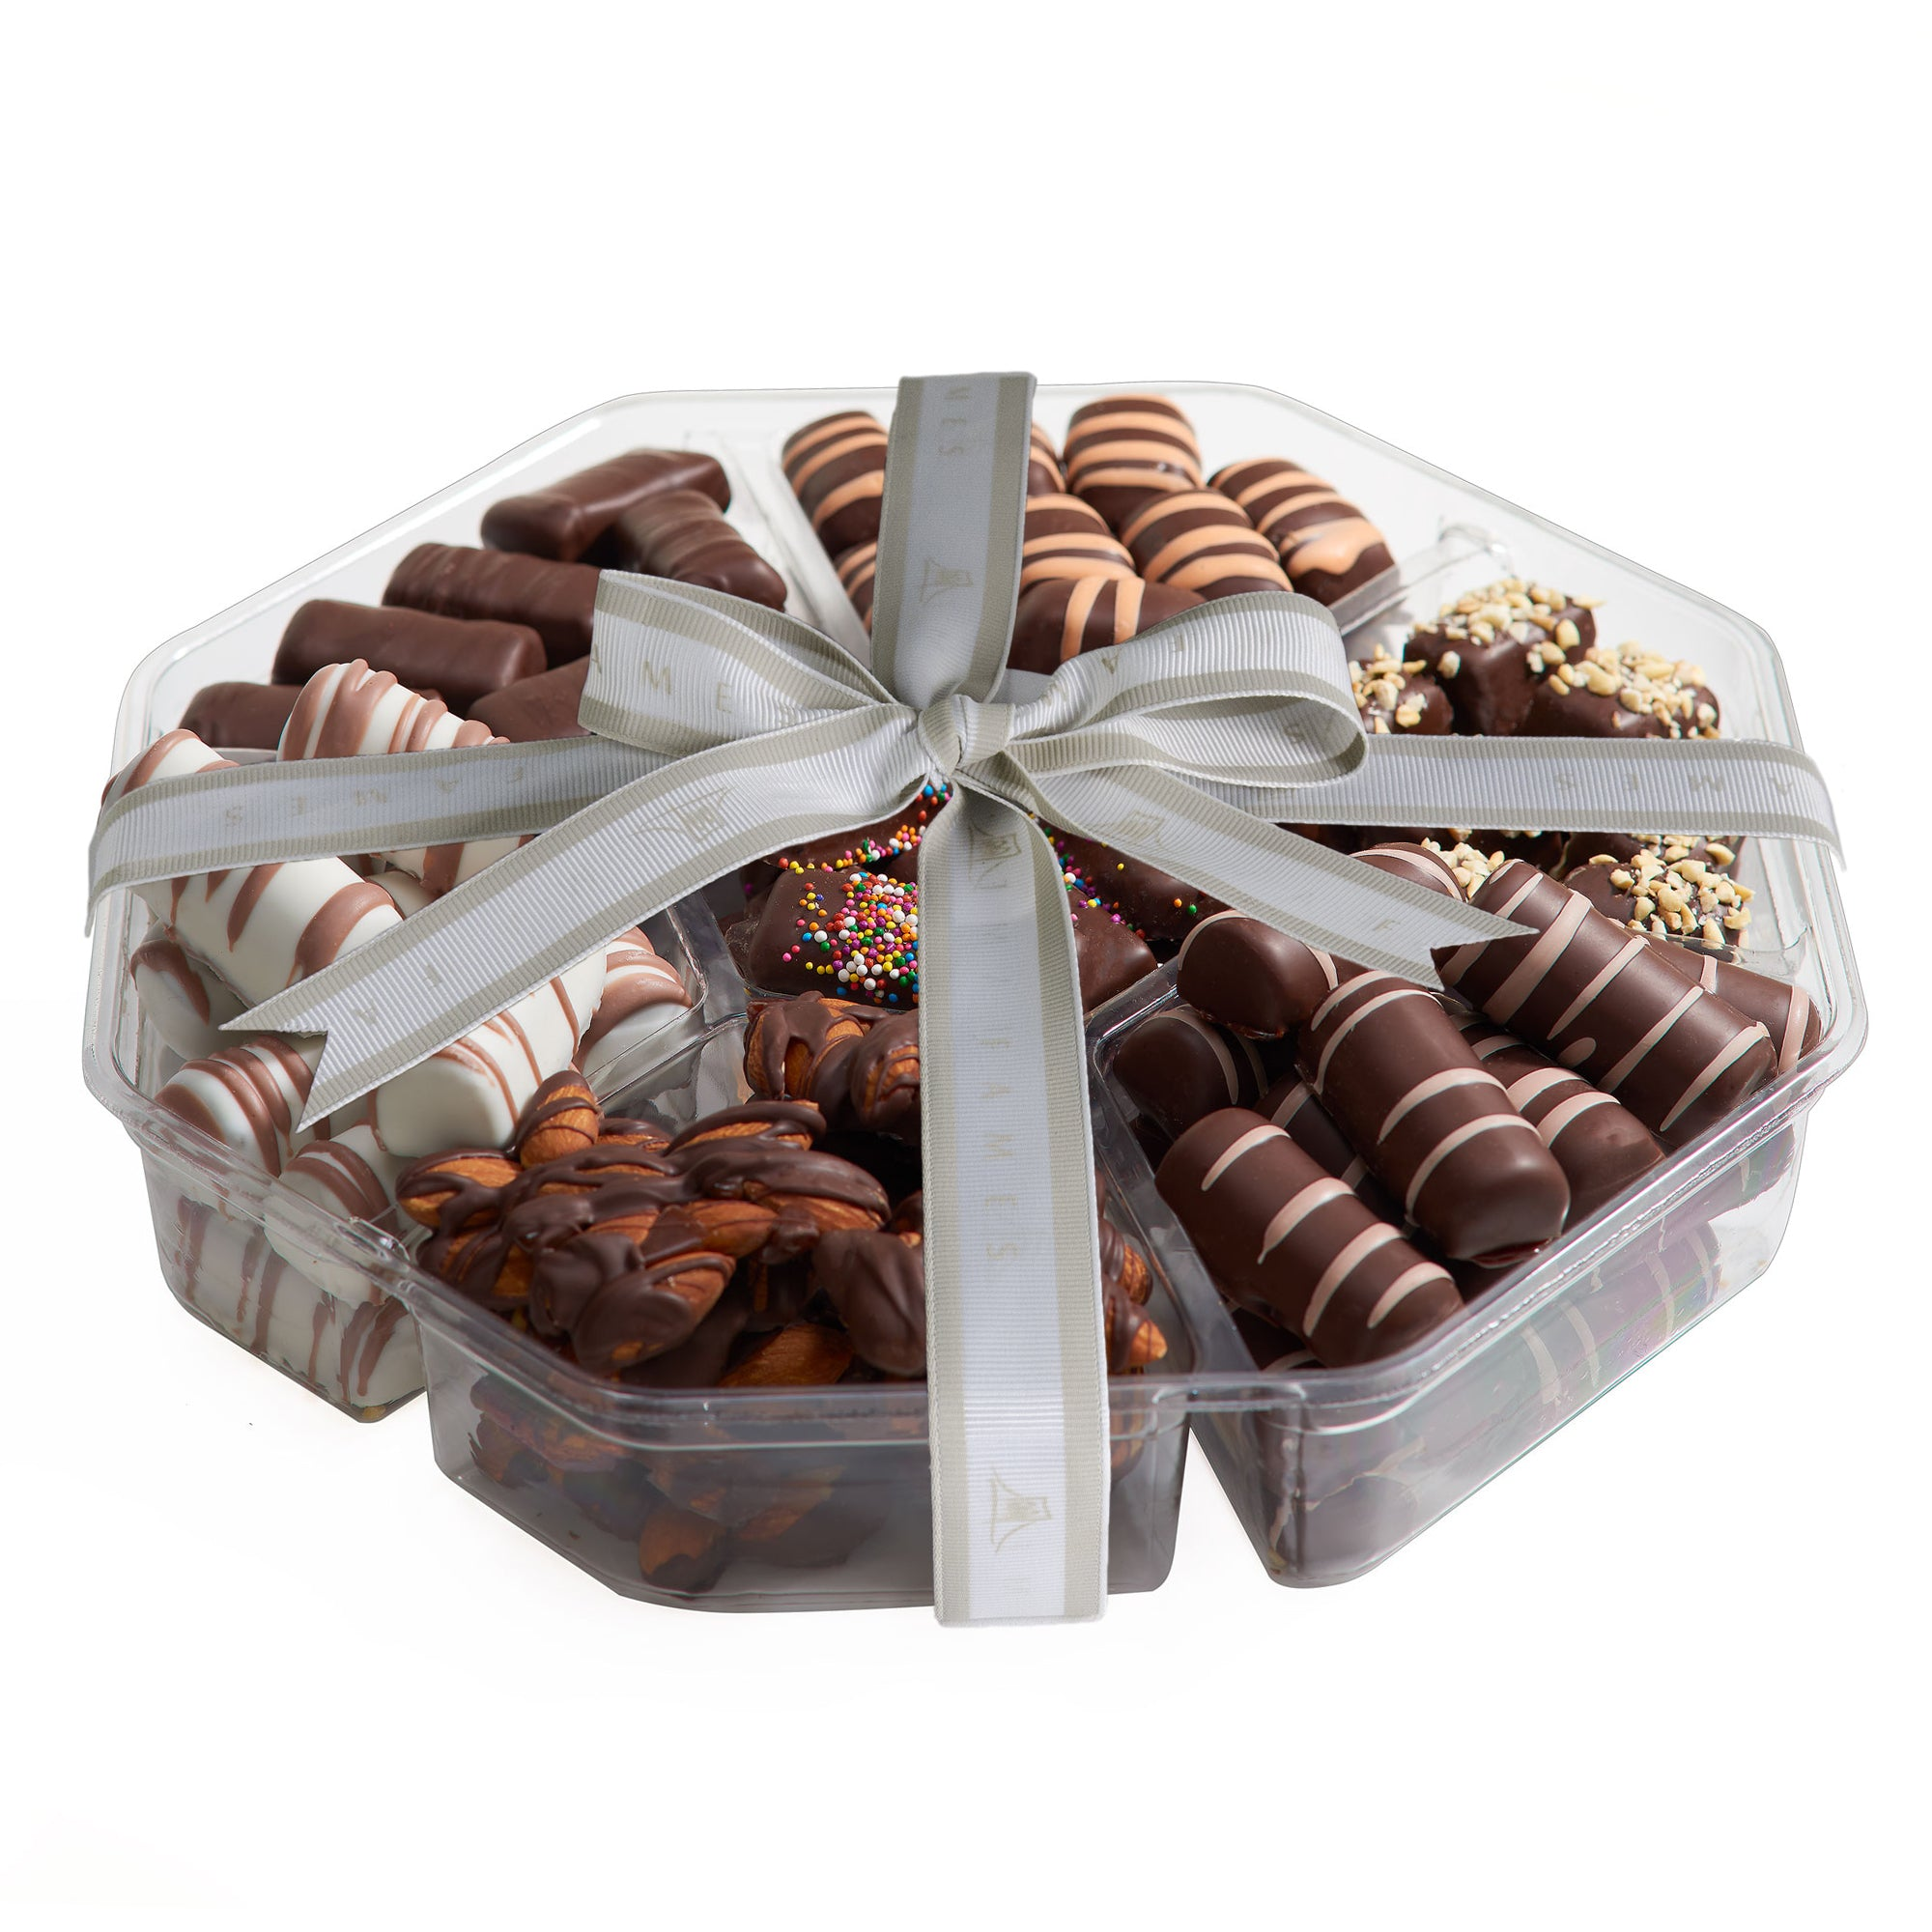 Kosher Chocolate Assortment - Great Chocolate Gift (2.50 Lb)